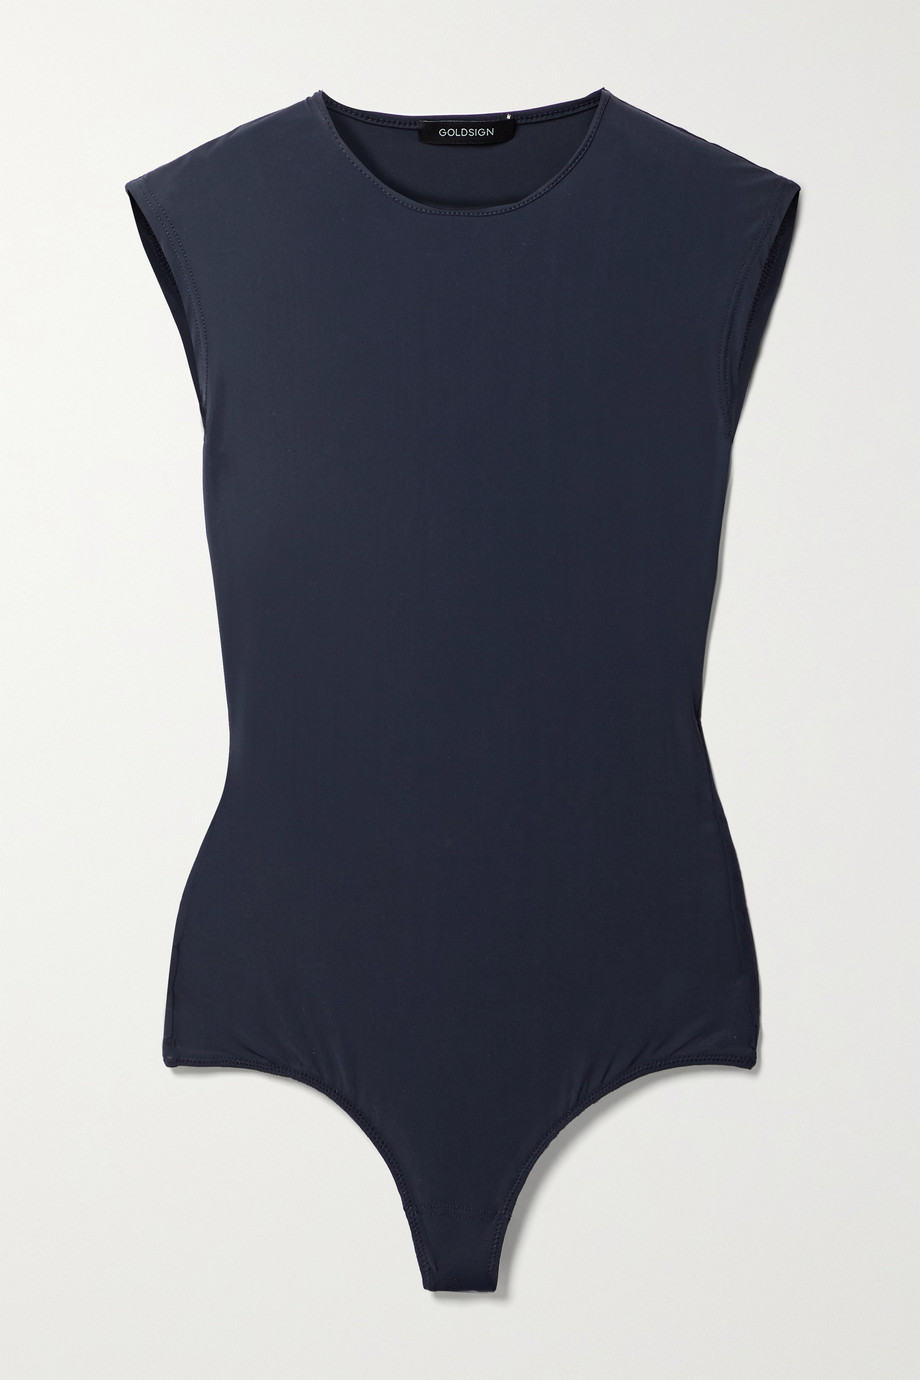 GOLDSIGN + NET SUSTAIN The Crew Neck stretch-jersey thong bodysuit